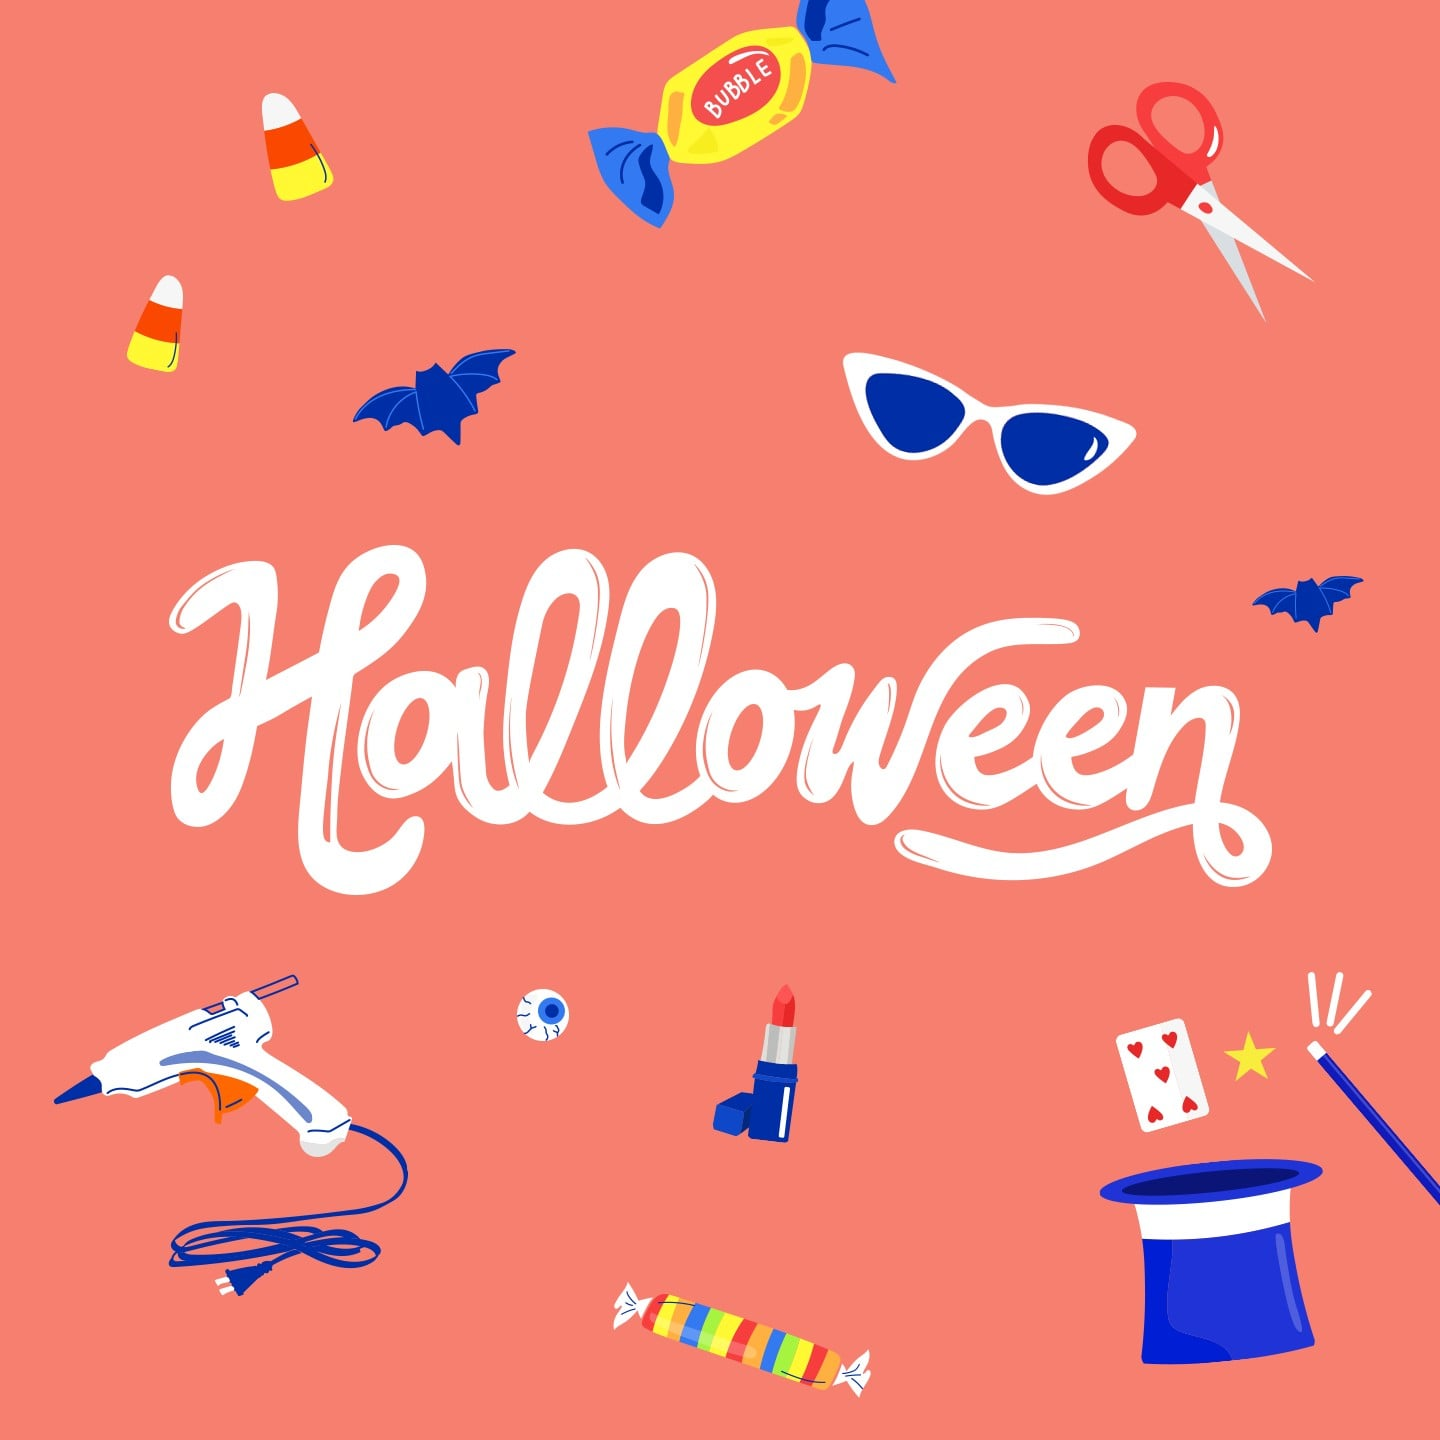 Halloween Pictures Cards 2018